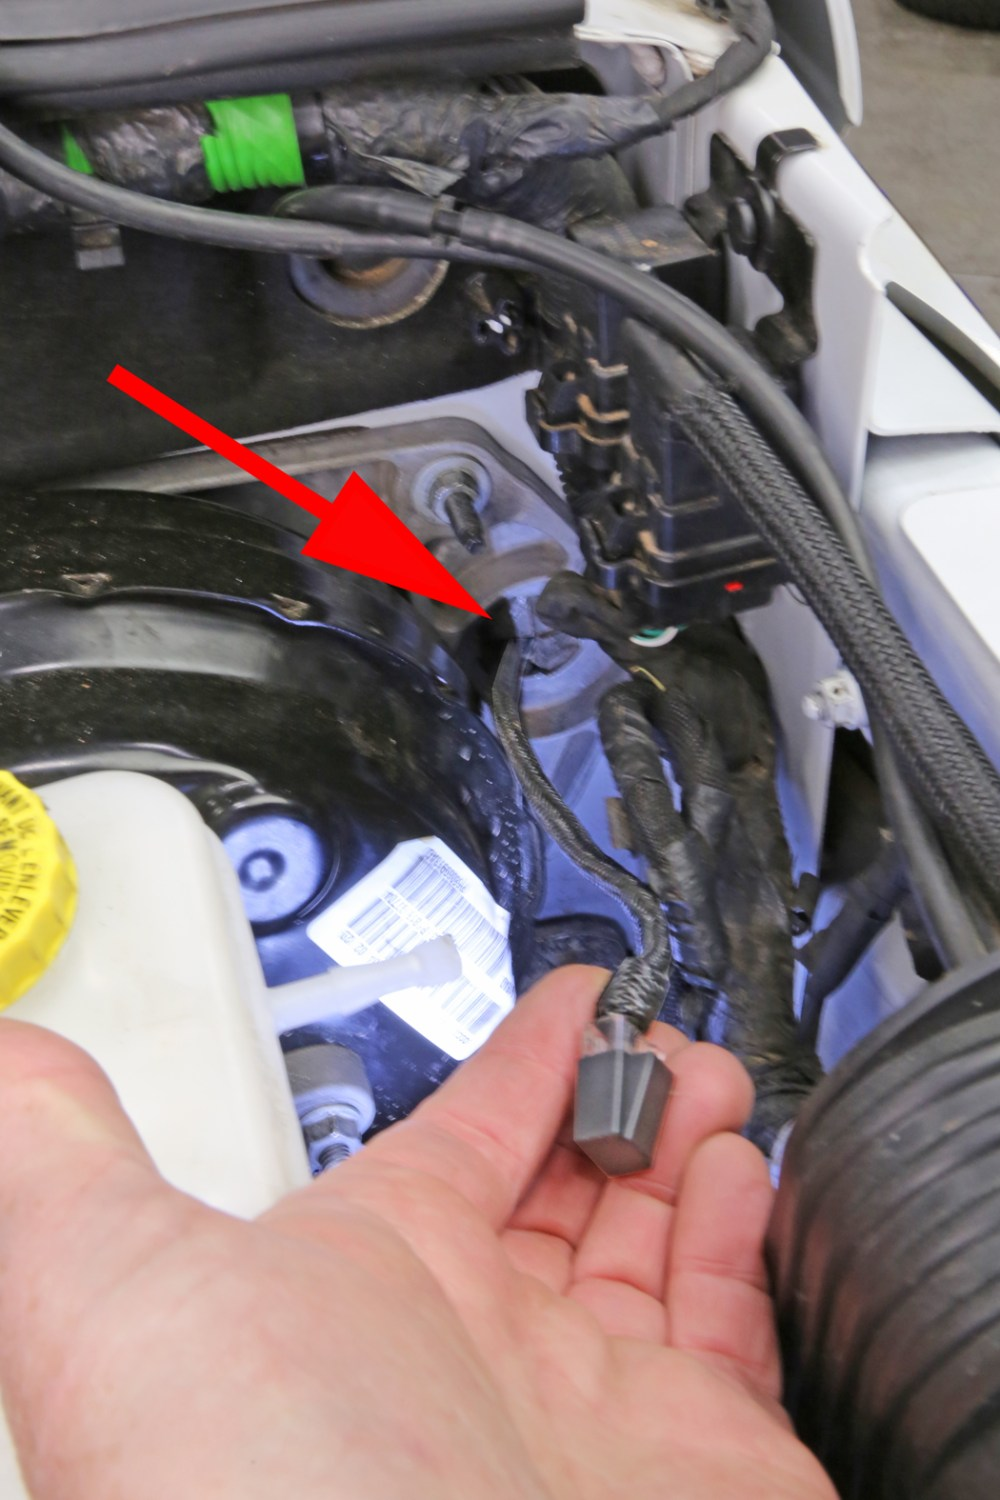 medium resolution of run the switch panel harness through the firewall grommet that is between the master cylinder and the inner fender if you find your having troubles getting